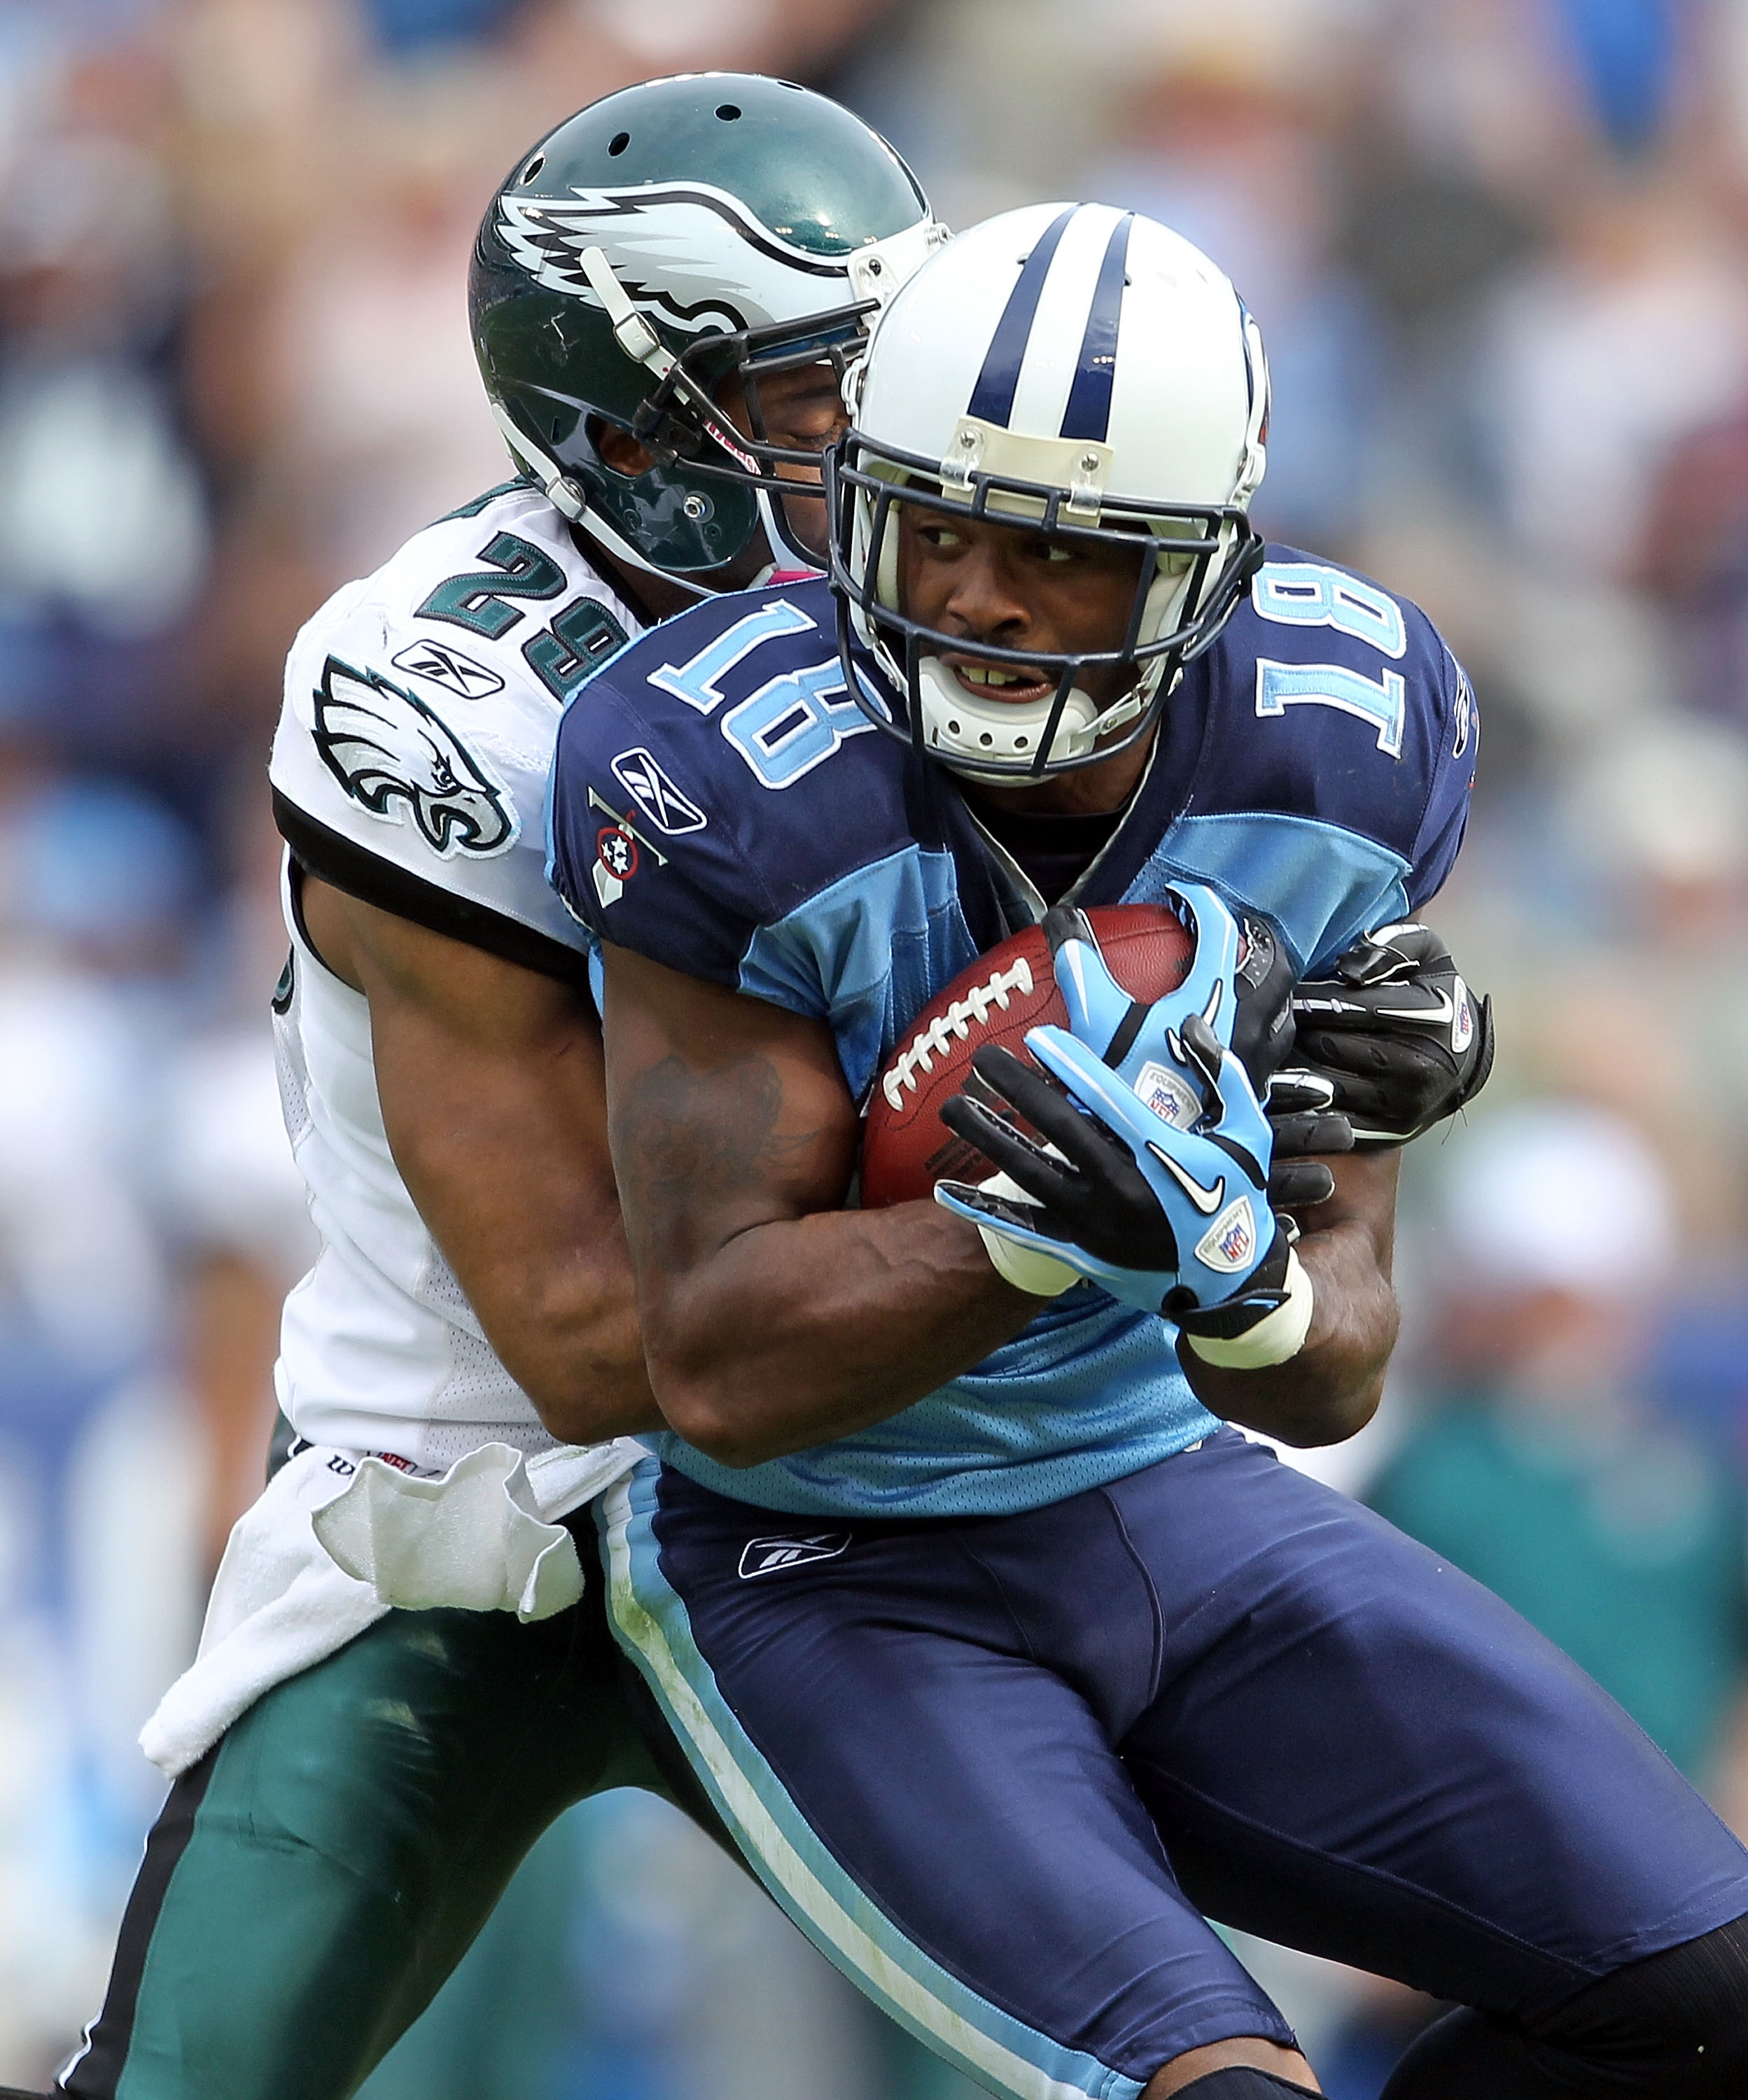 NASHVILLE, TN - OCTOBER 24:  Kenny Britt #18 of the Tennessee Titans catches a pass while defended by Nate Allen #29 of the Philadelphia Eagles during the NFL game at LP Field on October 24, 2010 in Nashville, Tennessee. The Titans won 37-19.  (Photo by A